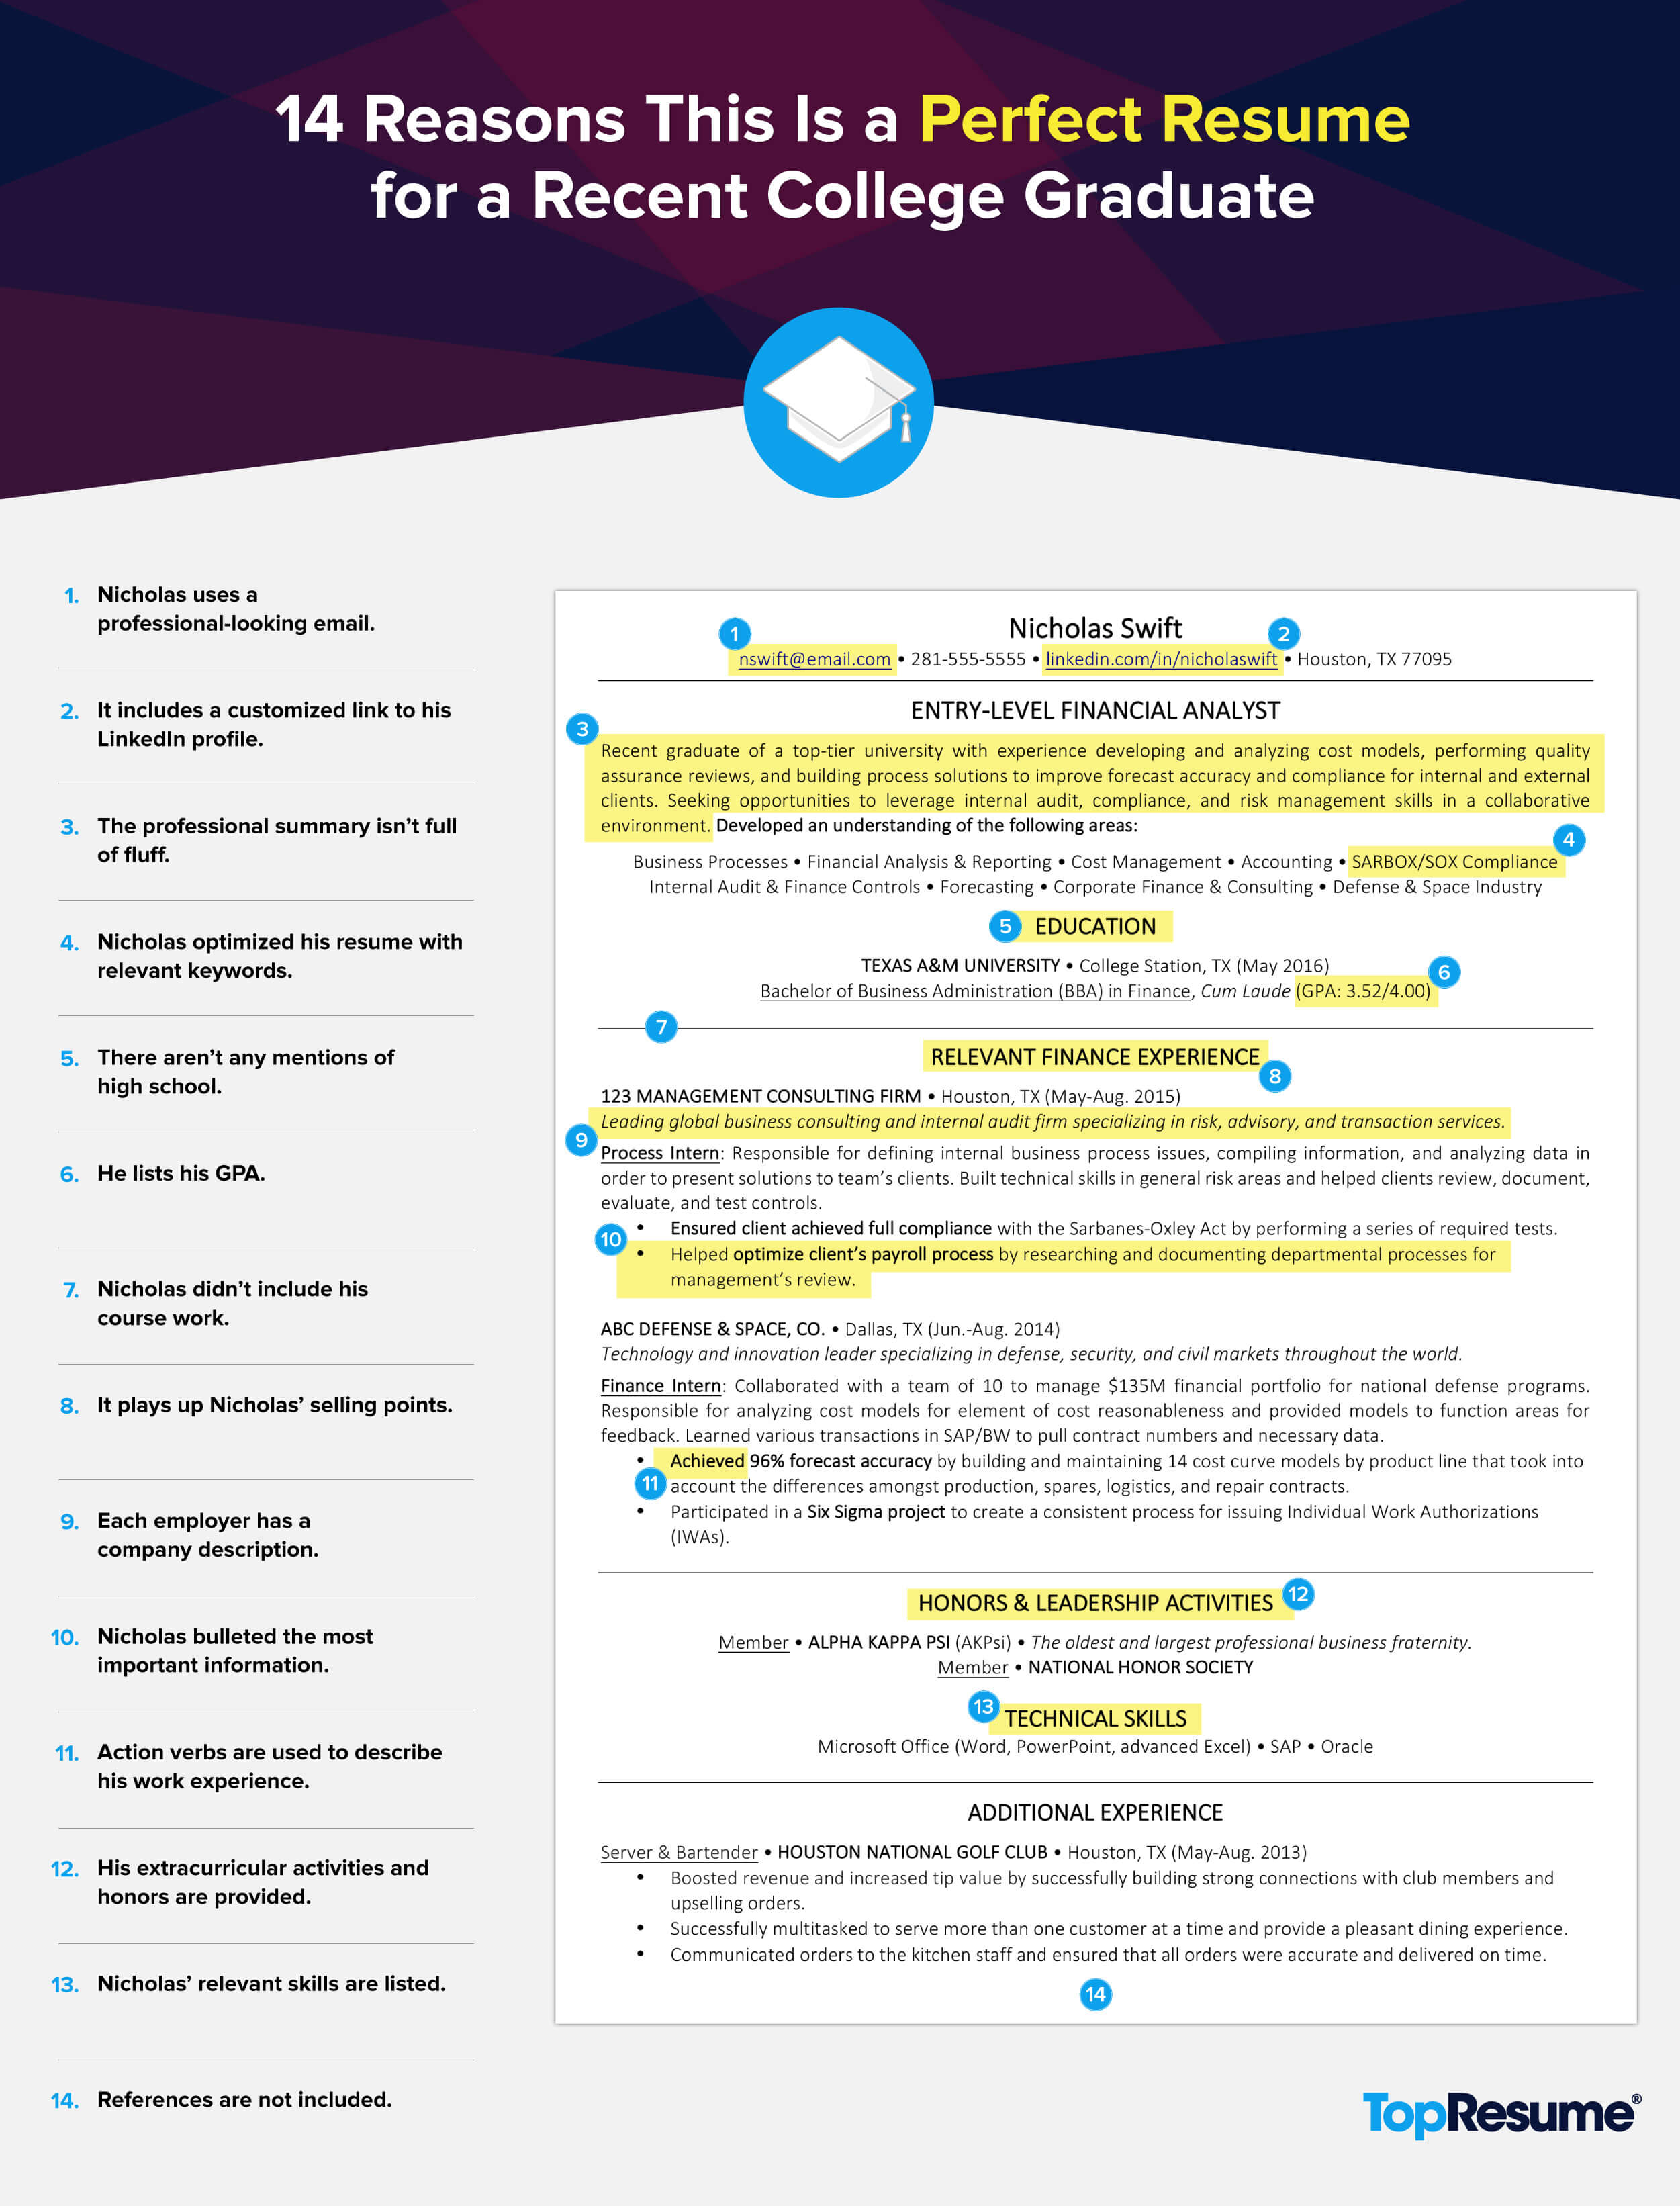 resume objective new graduate 14 reasons this is a perfect recent college grad resume topresume